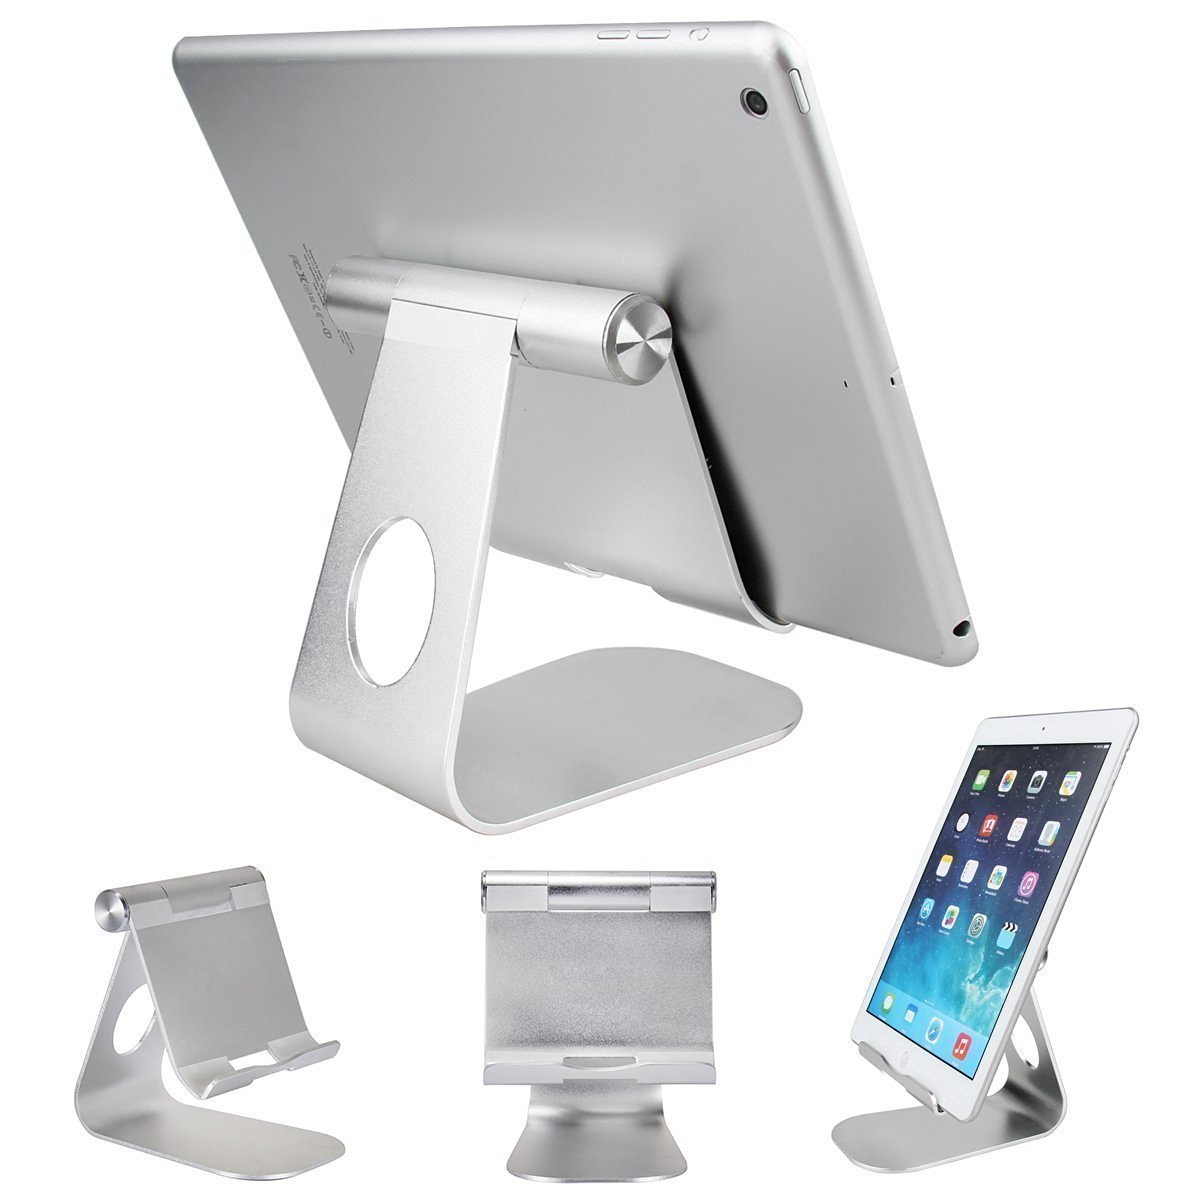 Tablet Holder Stand, KuGi ® High quality Multi-Angle Aluminum Stand for iPad Pro 9.7, iPad Mini, iPad Air 2 / 1,and Samsung Tab A 7.0 / 10.1, nexus, lenovo, asus etc. 7 to 12 inch Tablets.